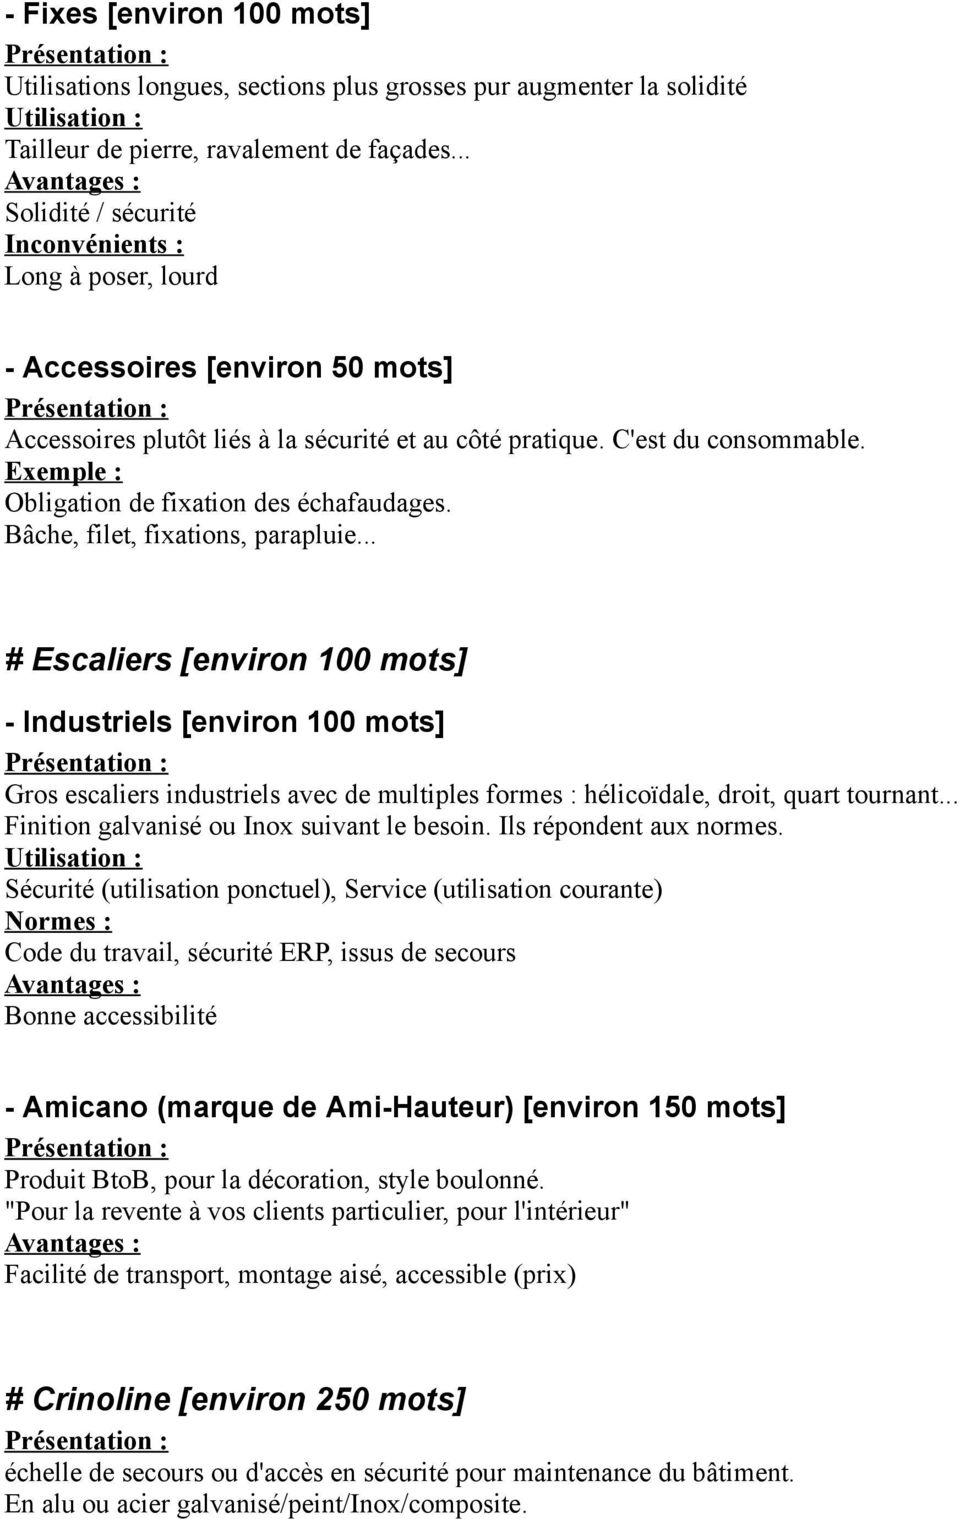 Exemple : Obligation de fixation des échafaudages. Bâche, filet, fixations, parapluie.